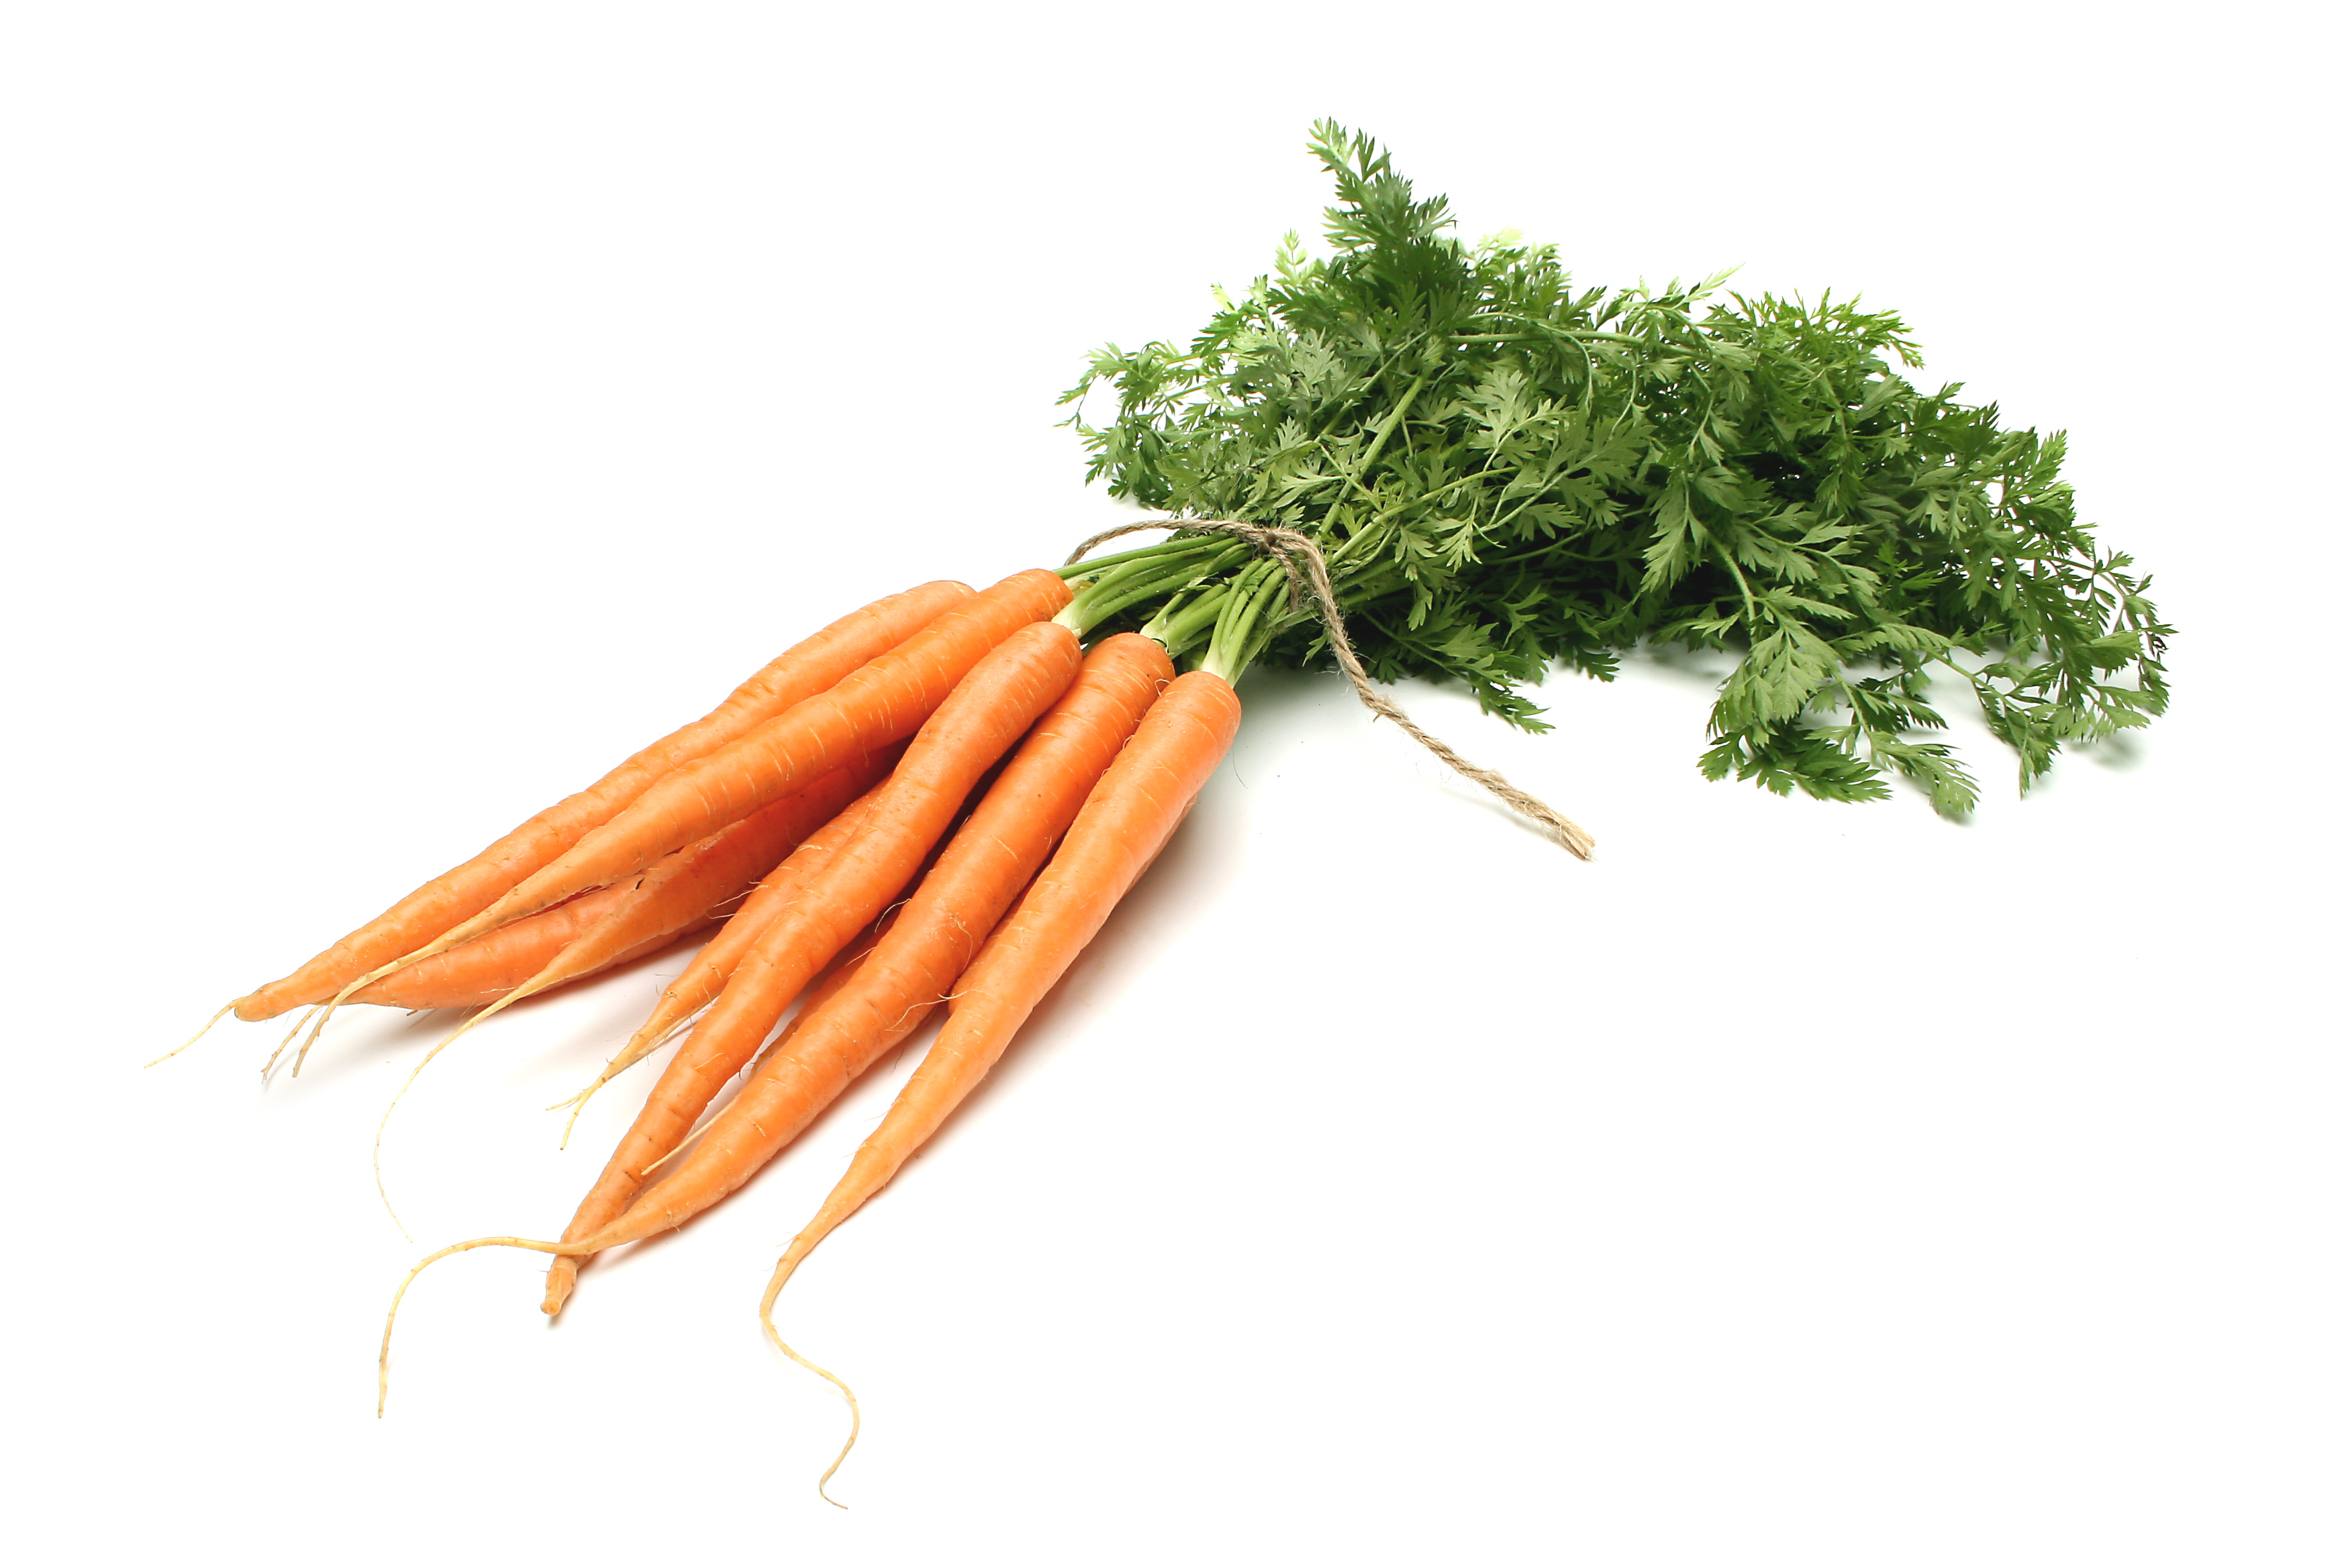 Carrot clipart nutritious food Benefits Facts And health Nutrition